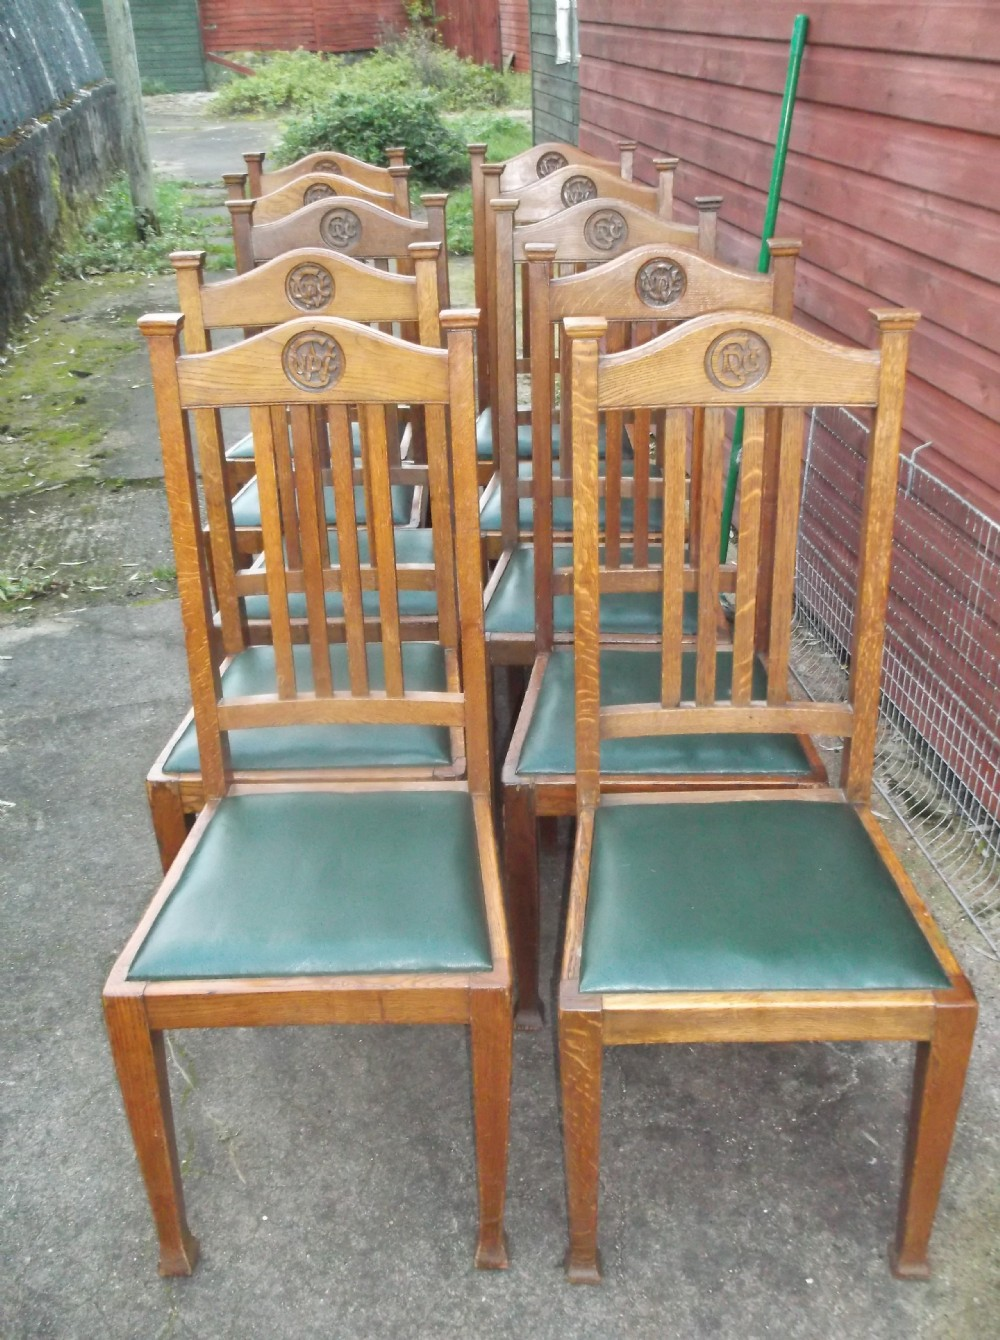 set of 10 oak dining chairs - Set Of 10 Oak Dining Chairs 253861 Sellingantiques.co.uk